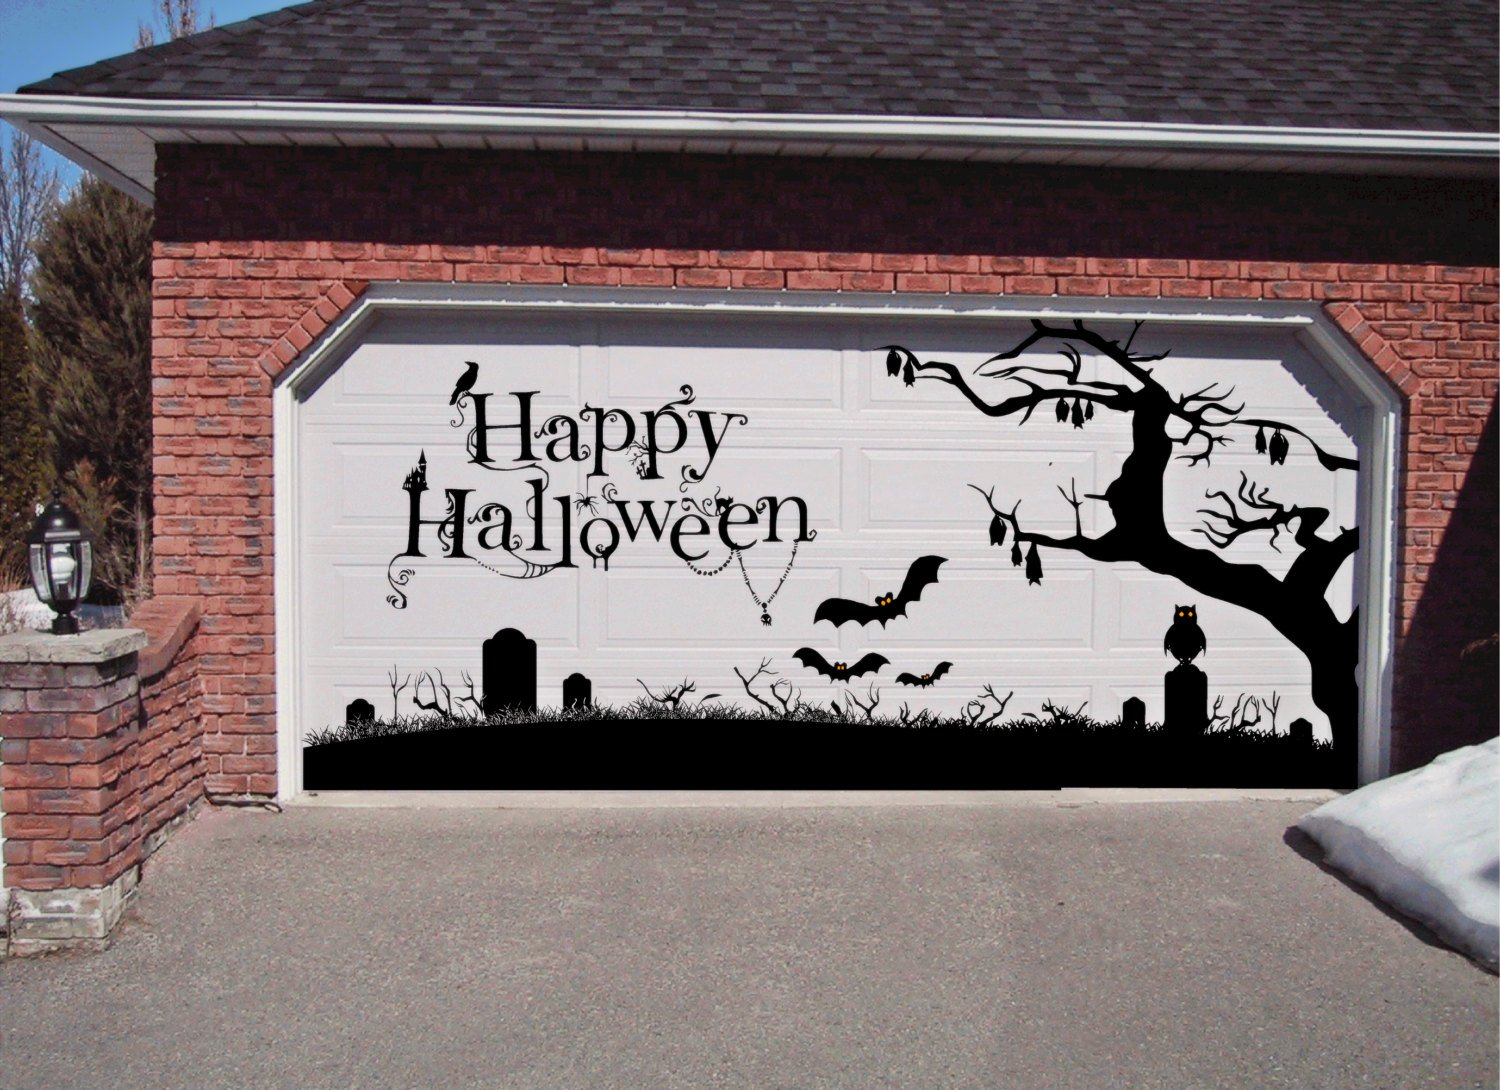 Halloween garage door magnets - Happy Halloween Garage Door Decoration Holiday Xtra Large Vinyl Decal Removeable This Decal Is 72 Tall Your Decals Will Be Shipped In Colors Shown